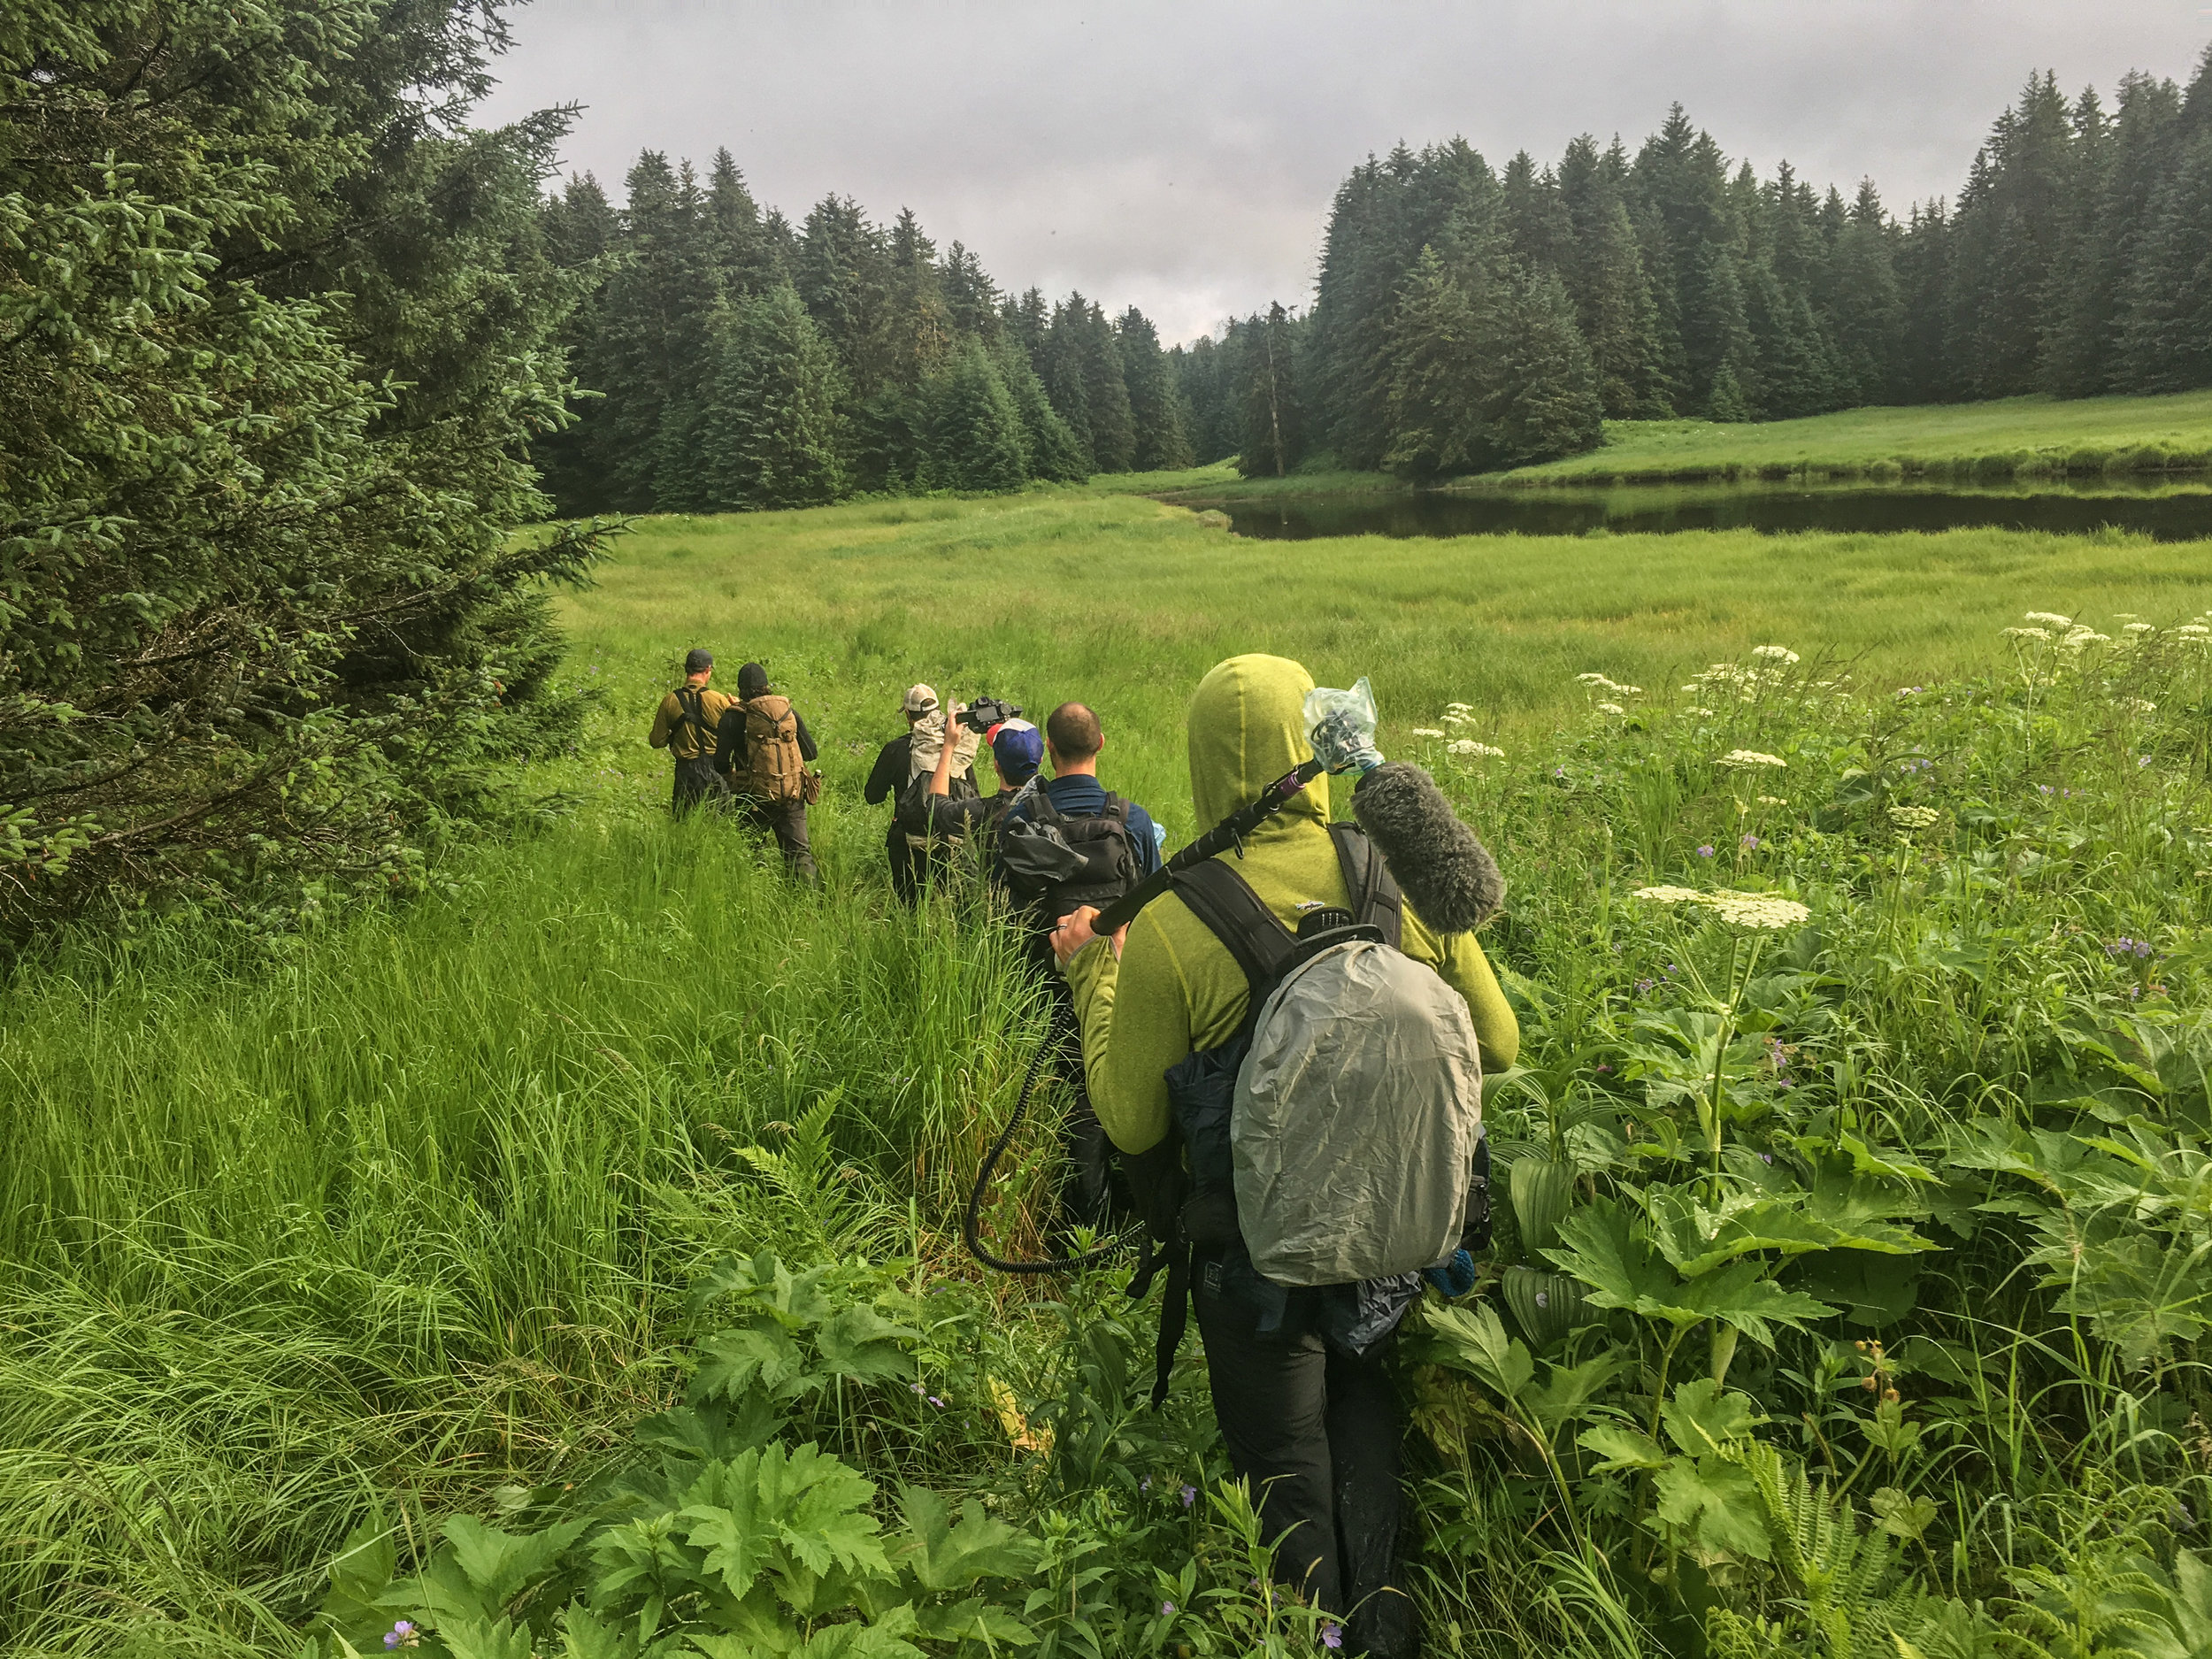 Trekking into the wilds of Alaska in search of furry animals.